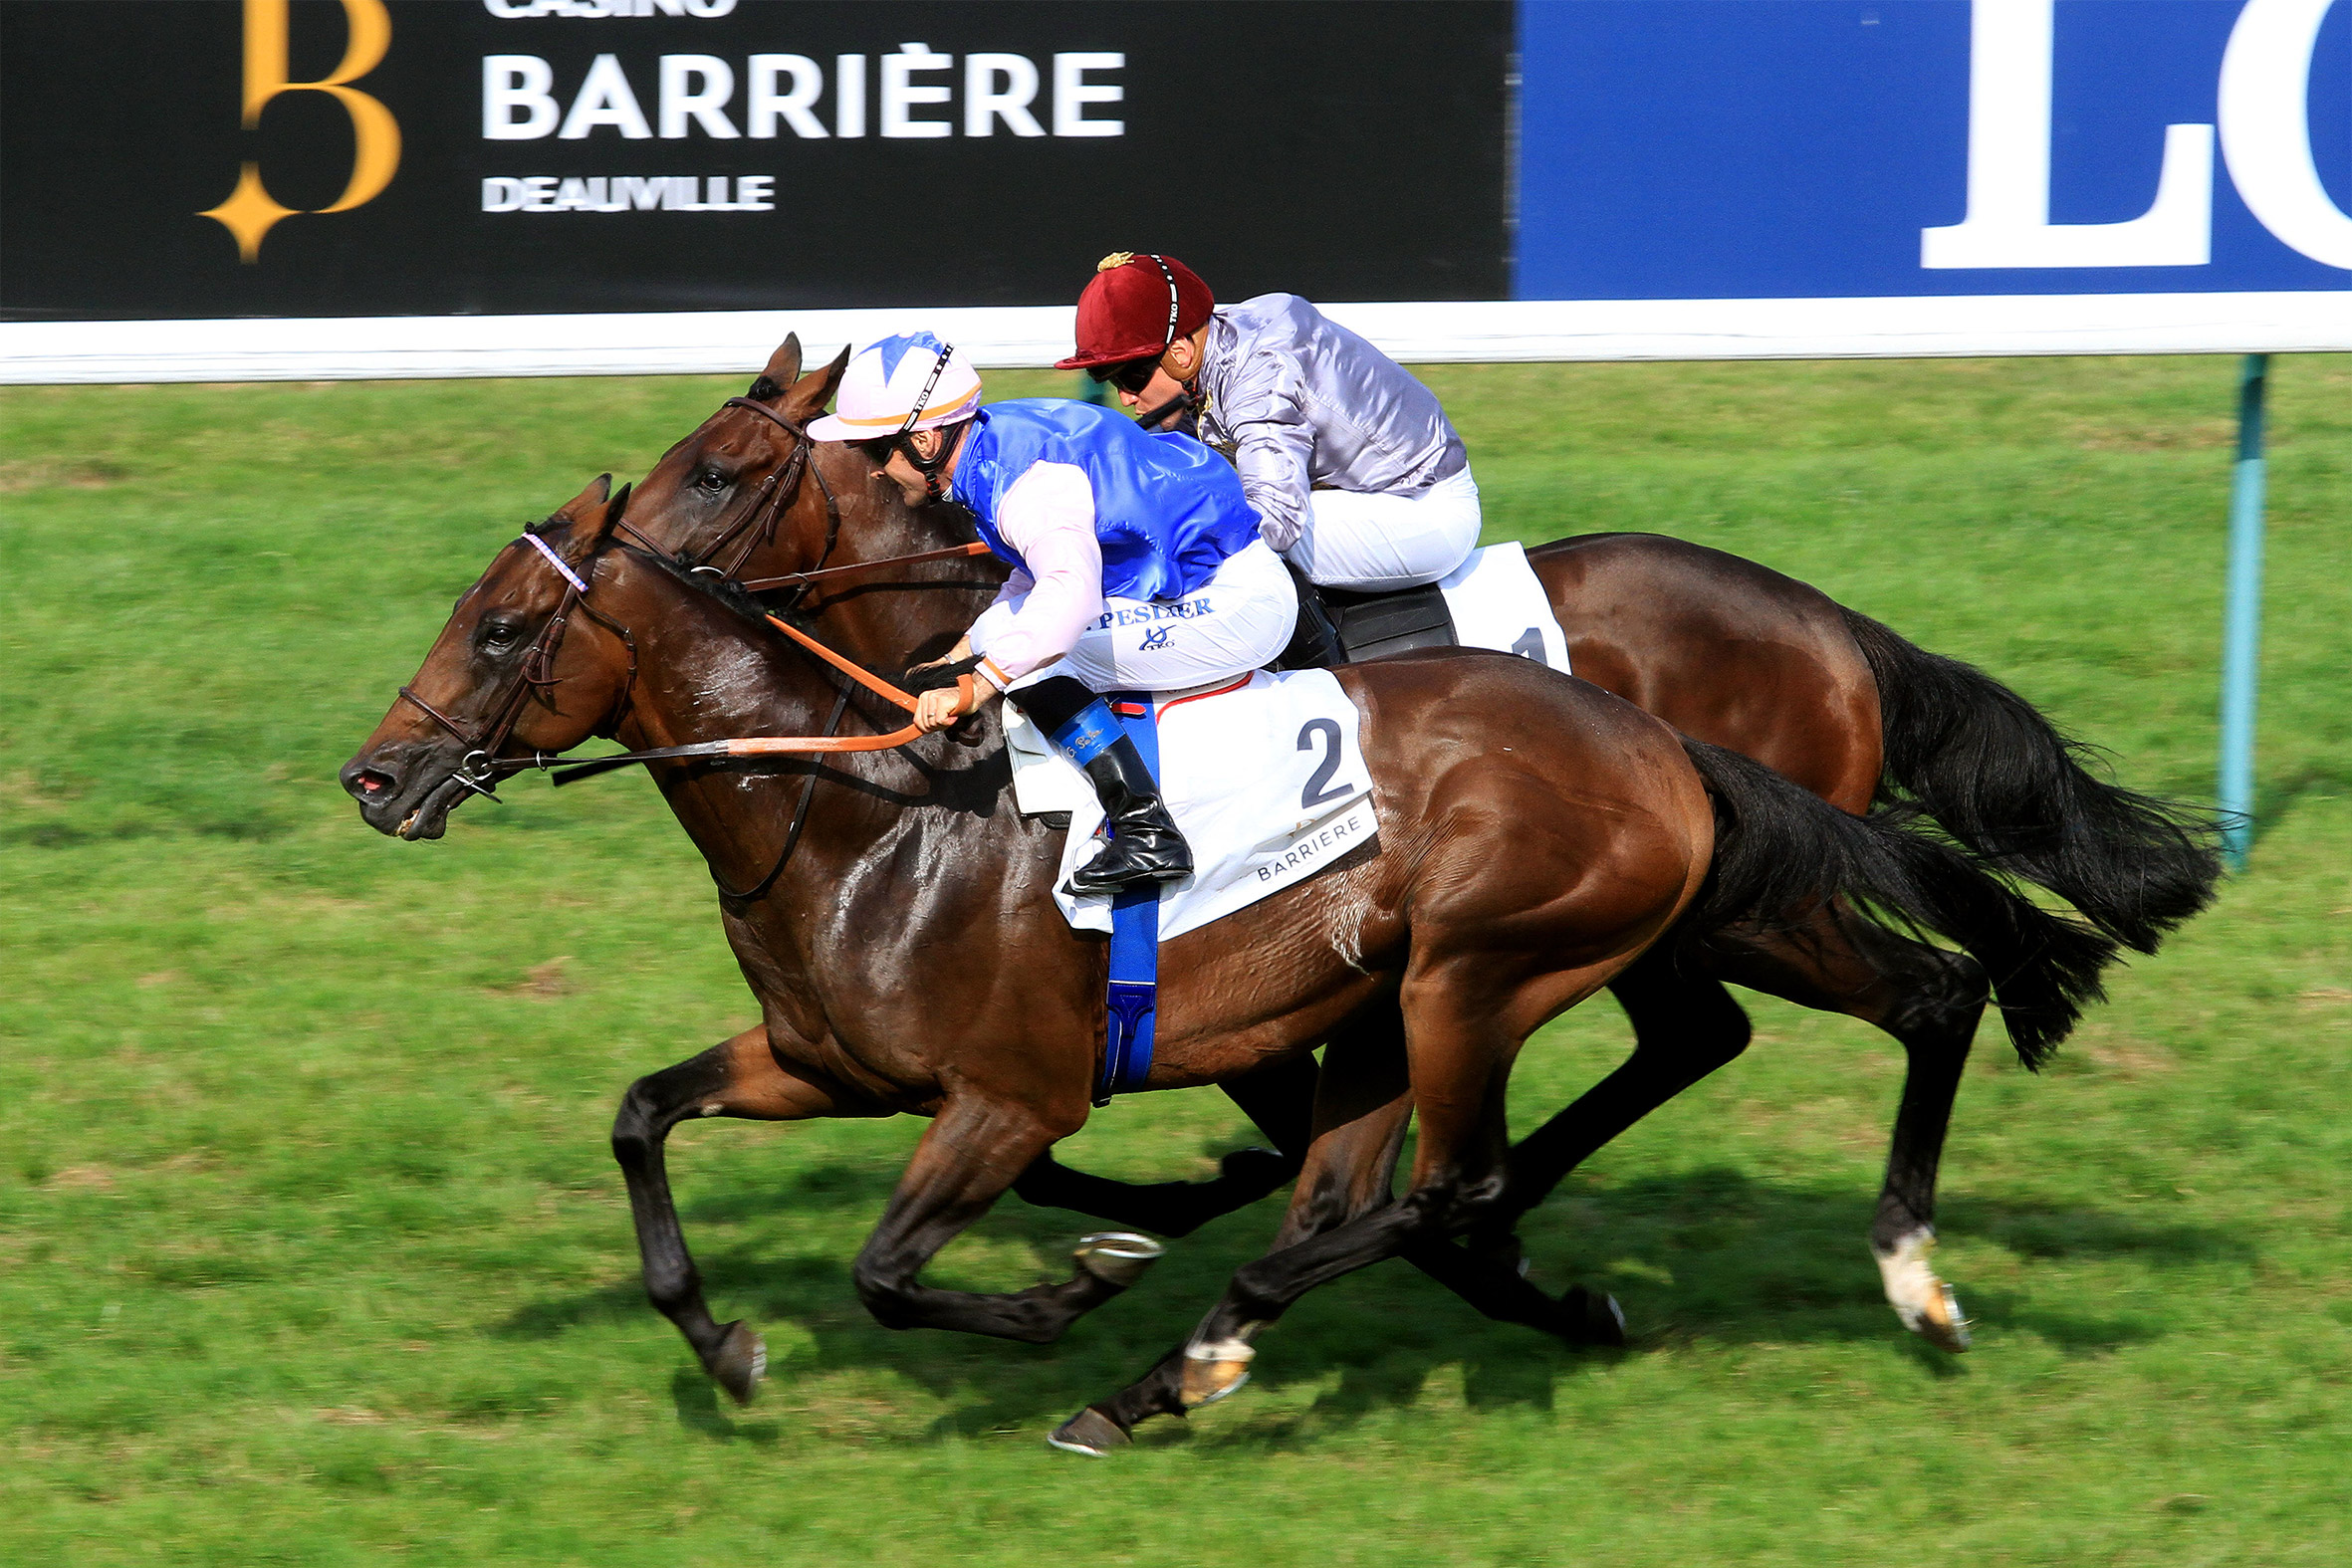 gp_deauville_barriere.jpg